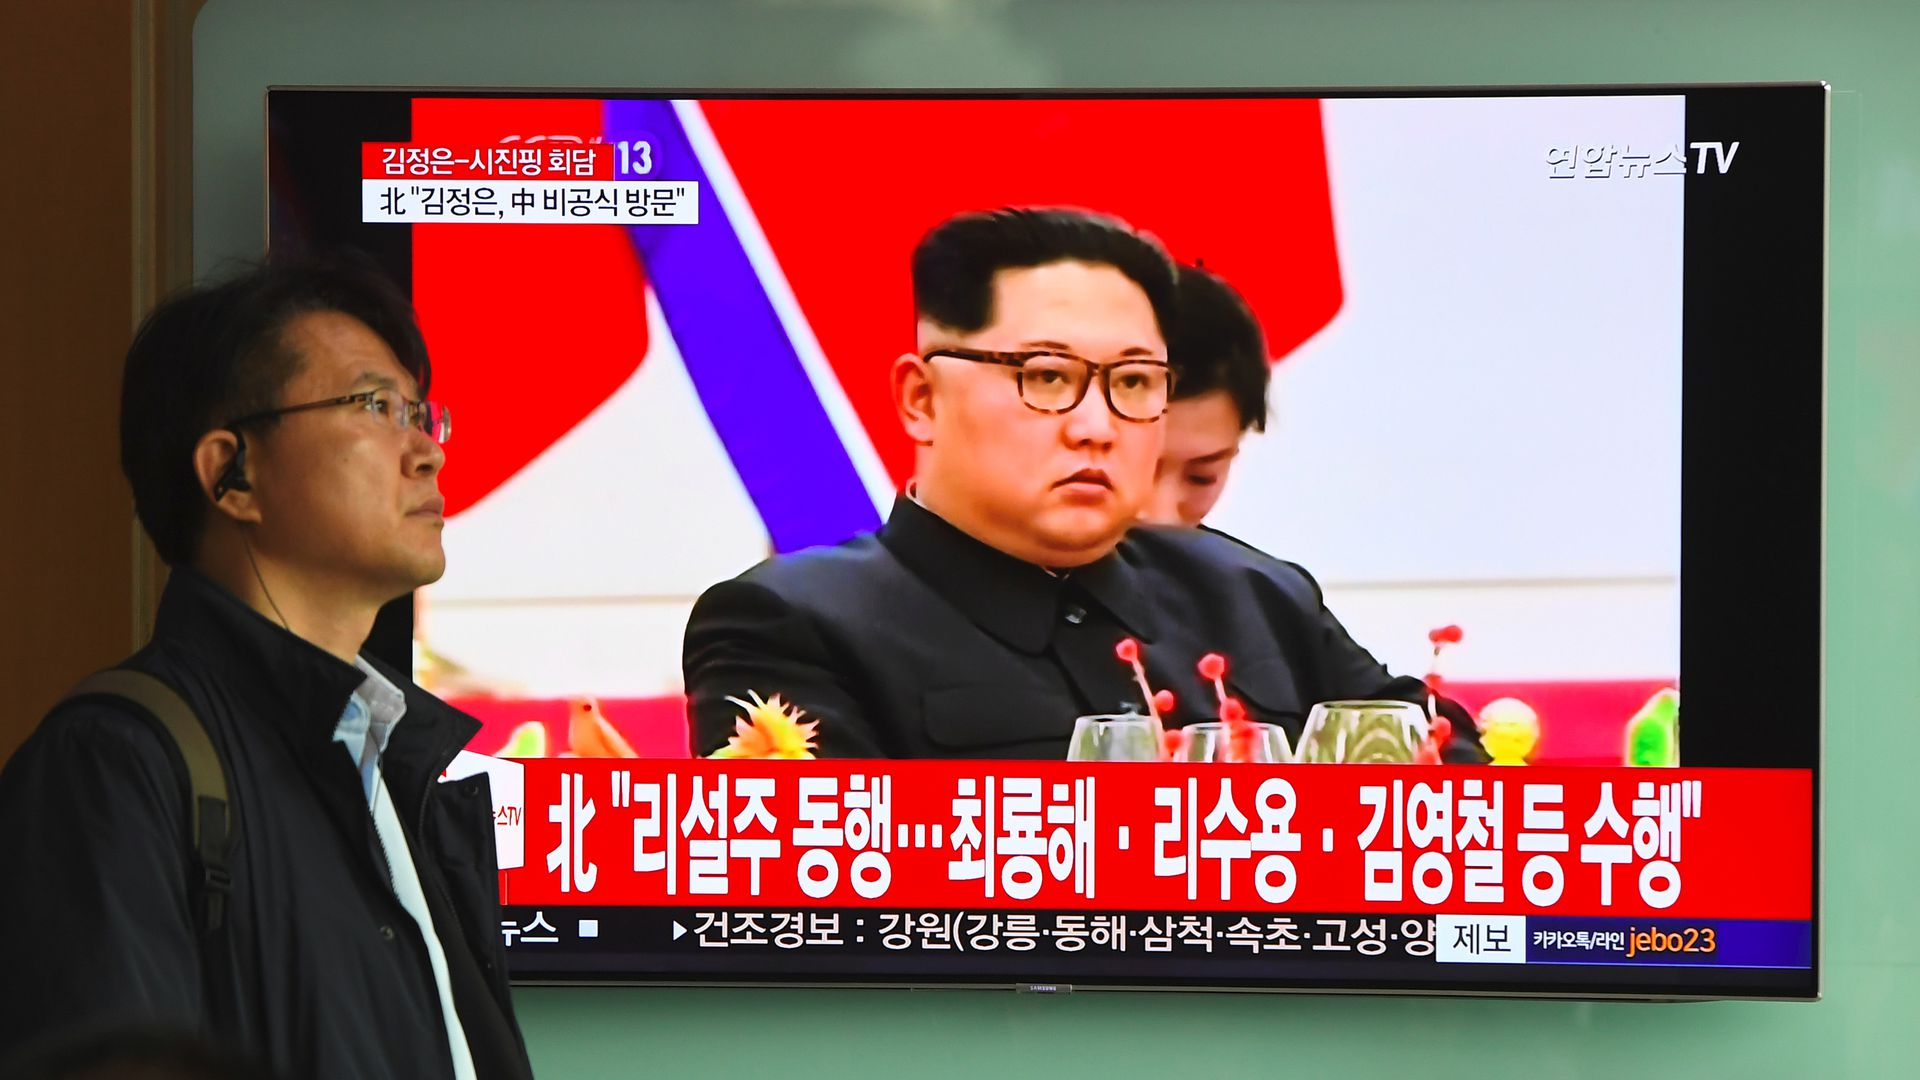 Kim Jong-un displayed on a TV with a red backdrop.